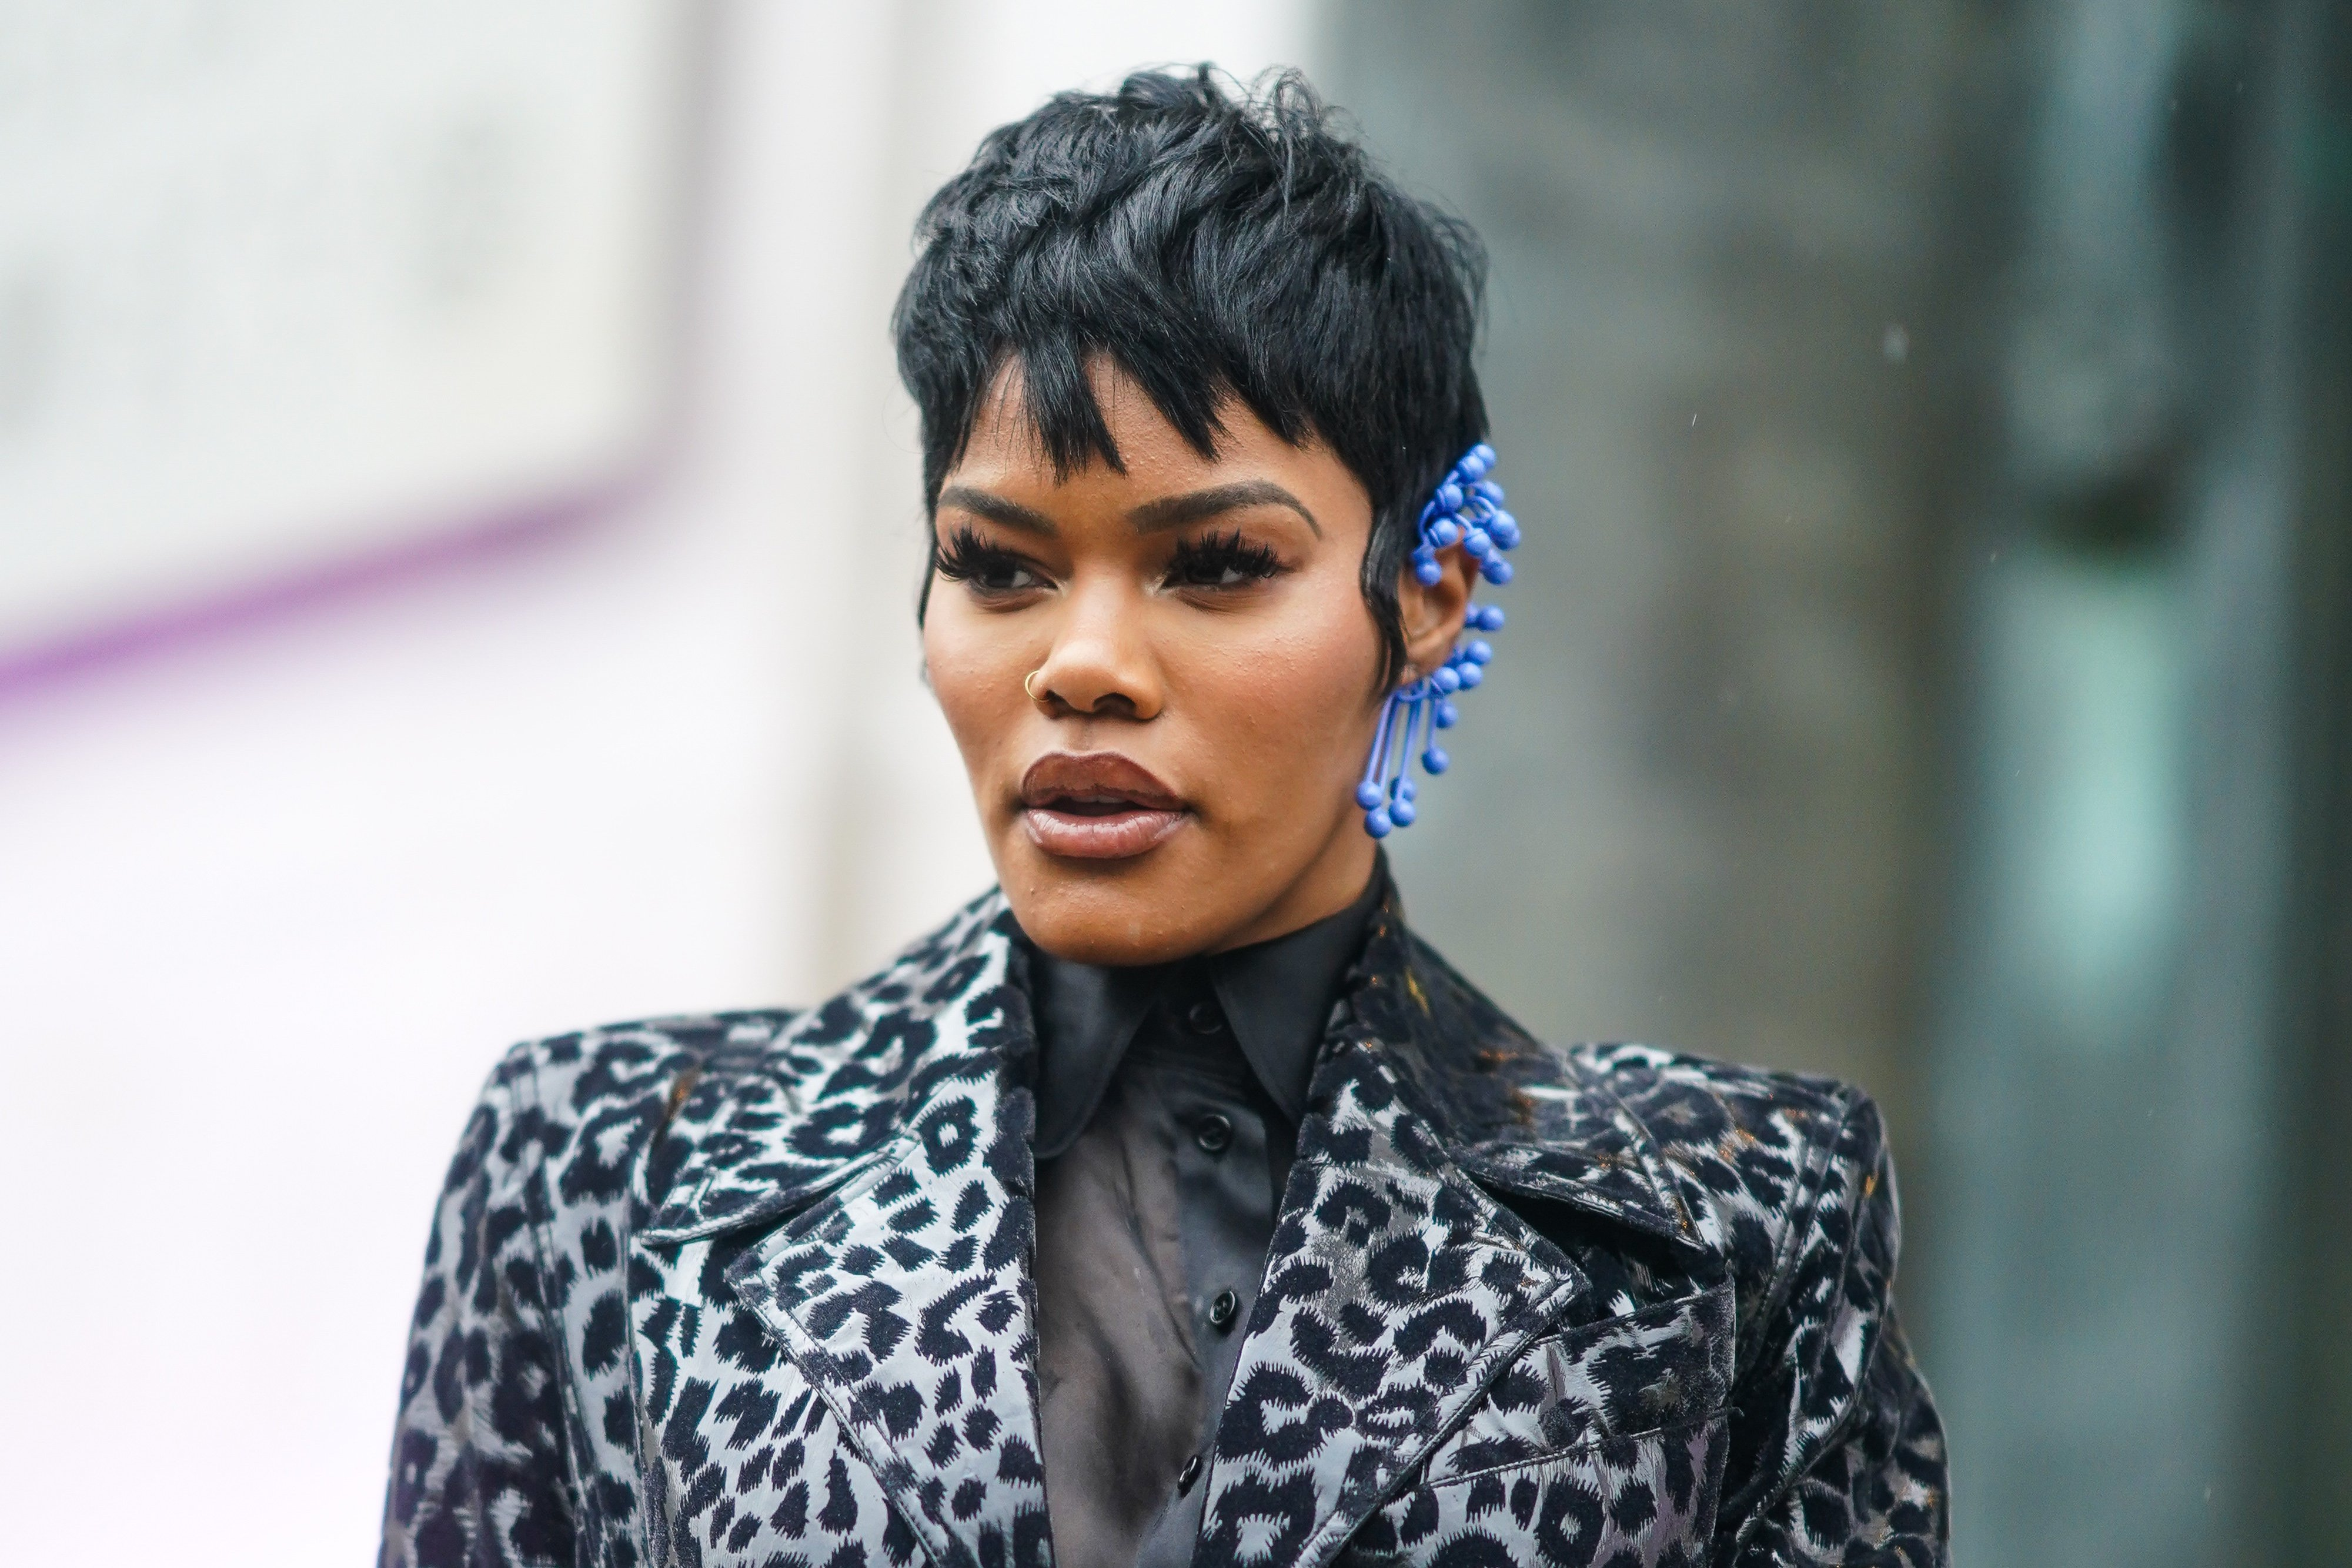 Teyana Taylor at the Paris Fashion Week - Womenswear Fall/Winter 2020/2021, on February 26, 2020.   Photo: Getty Images